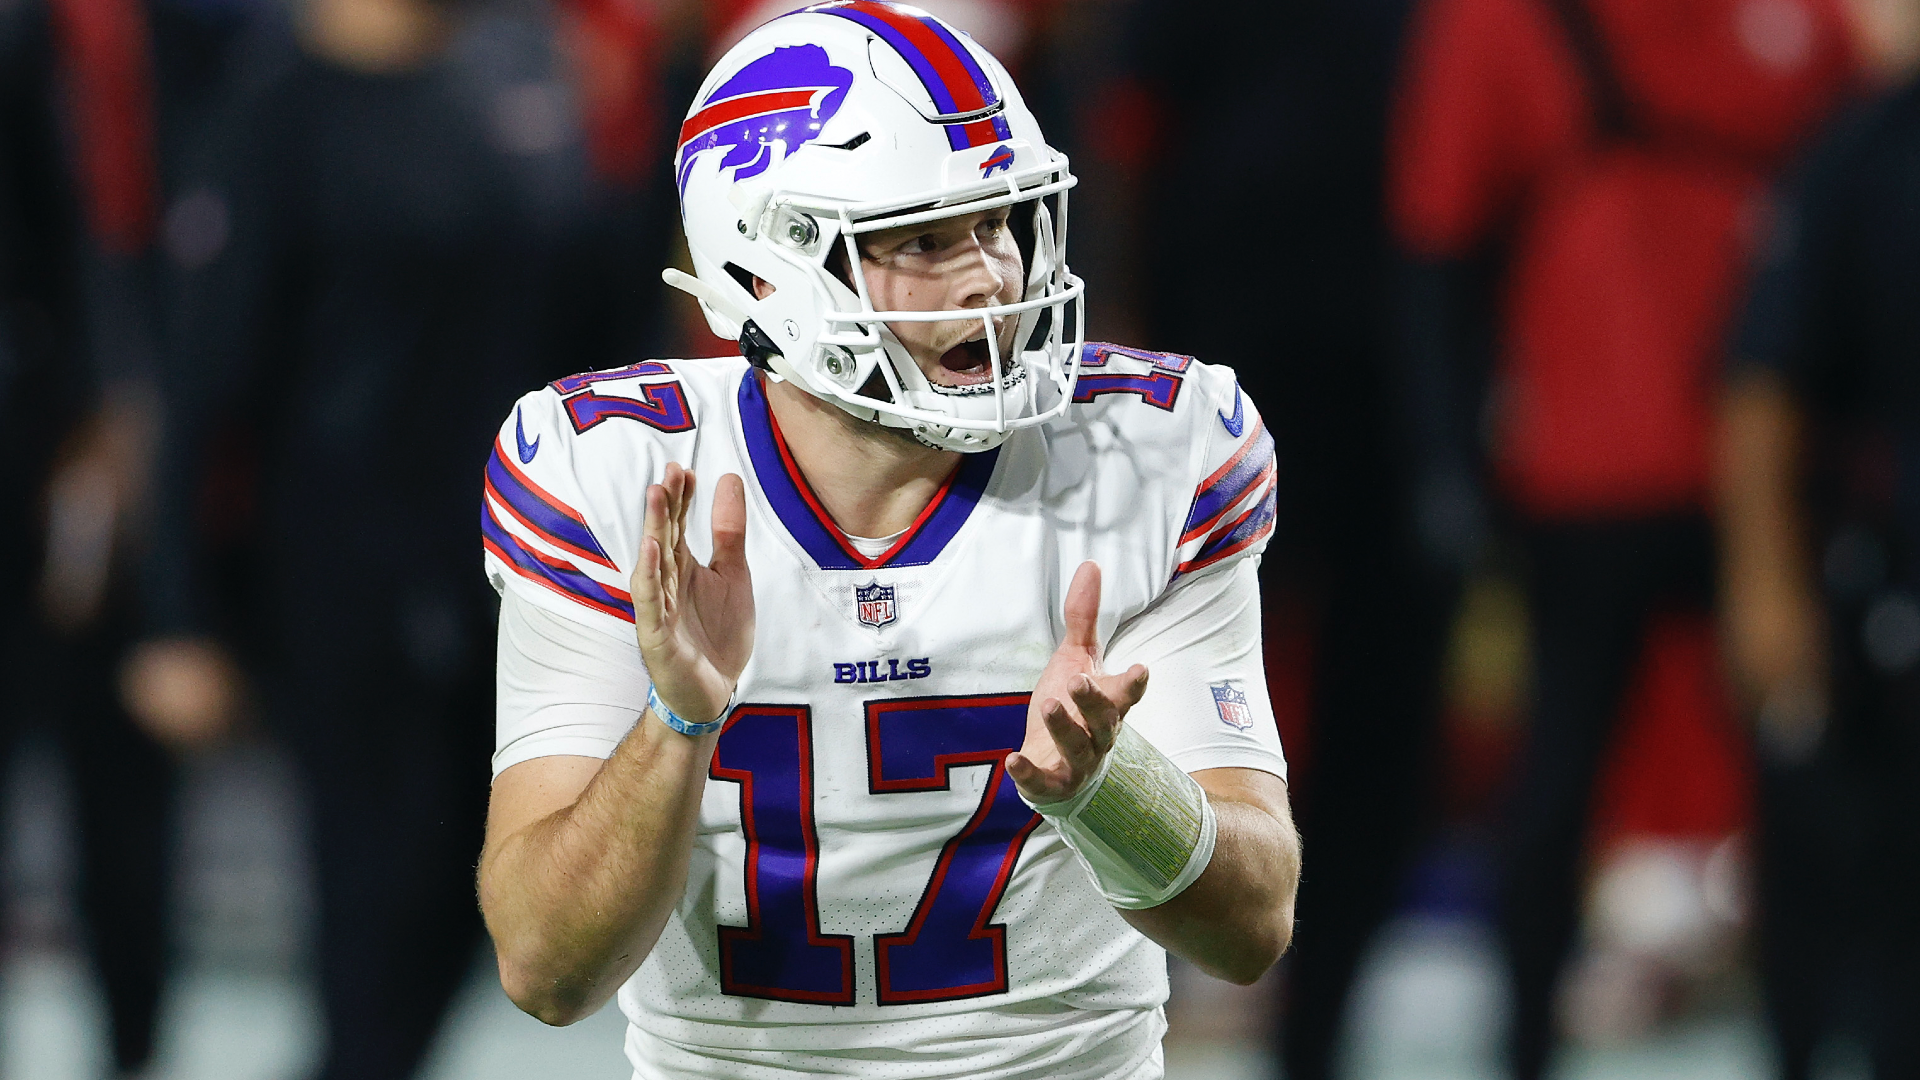 Josh Allen flops, draws roughing the passer call and James Harden comparisons vs. Ravens - Report Door